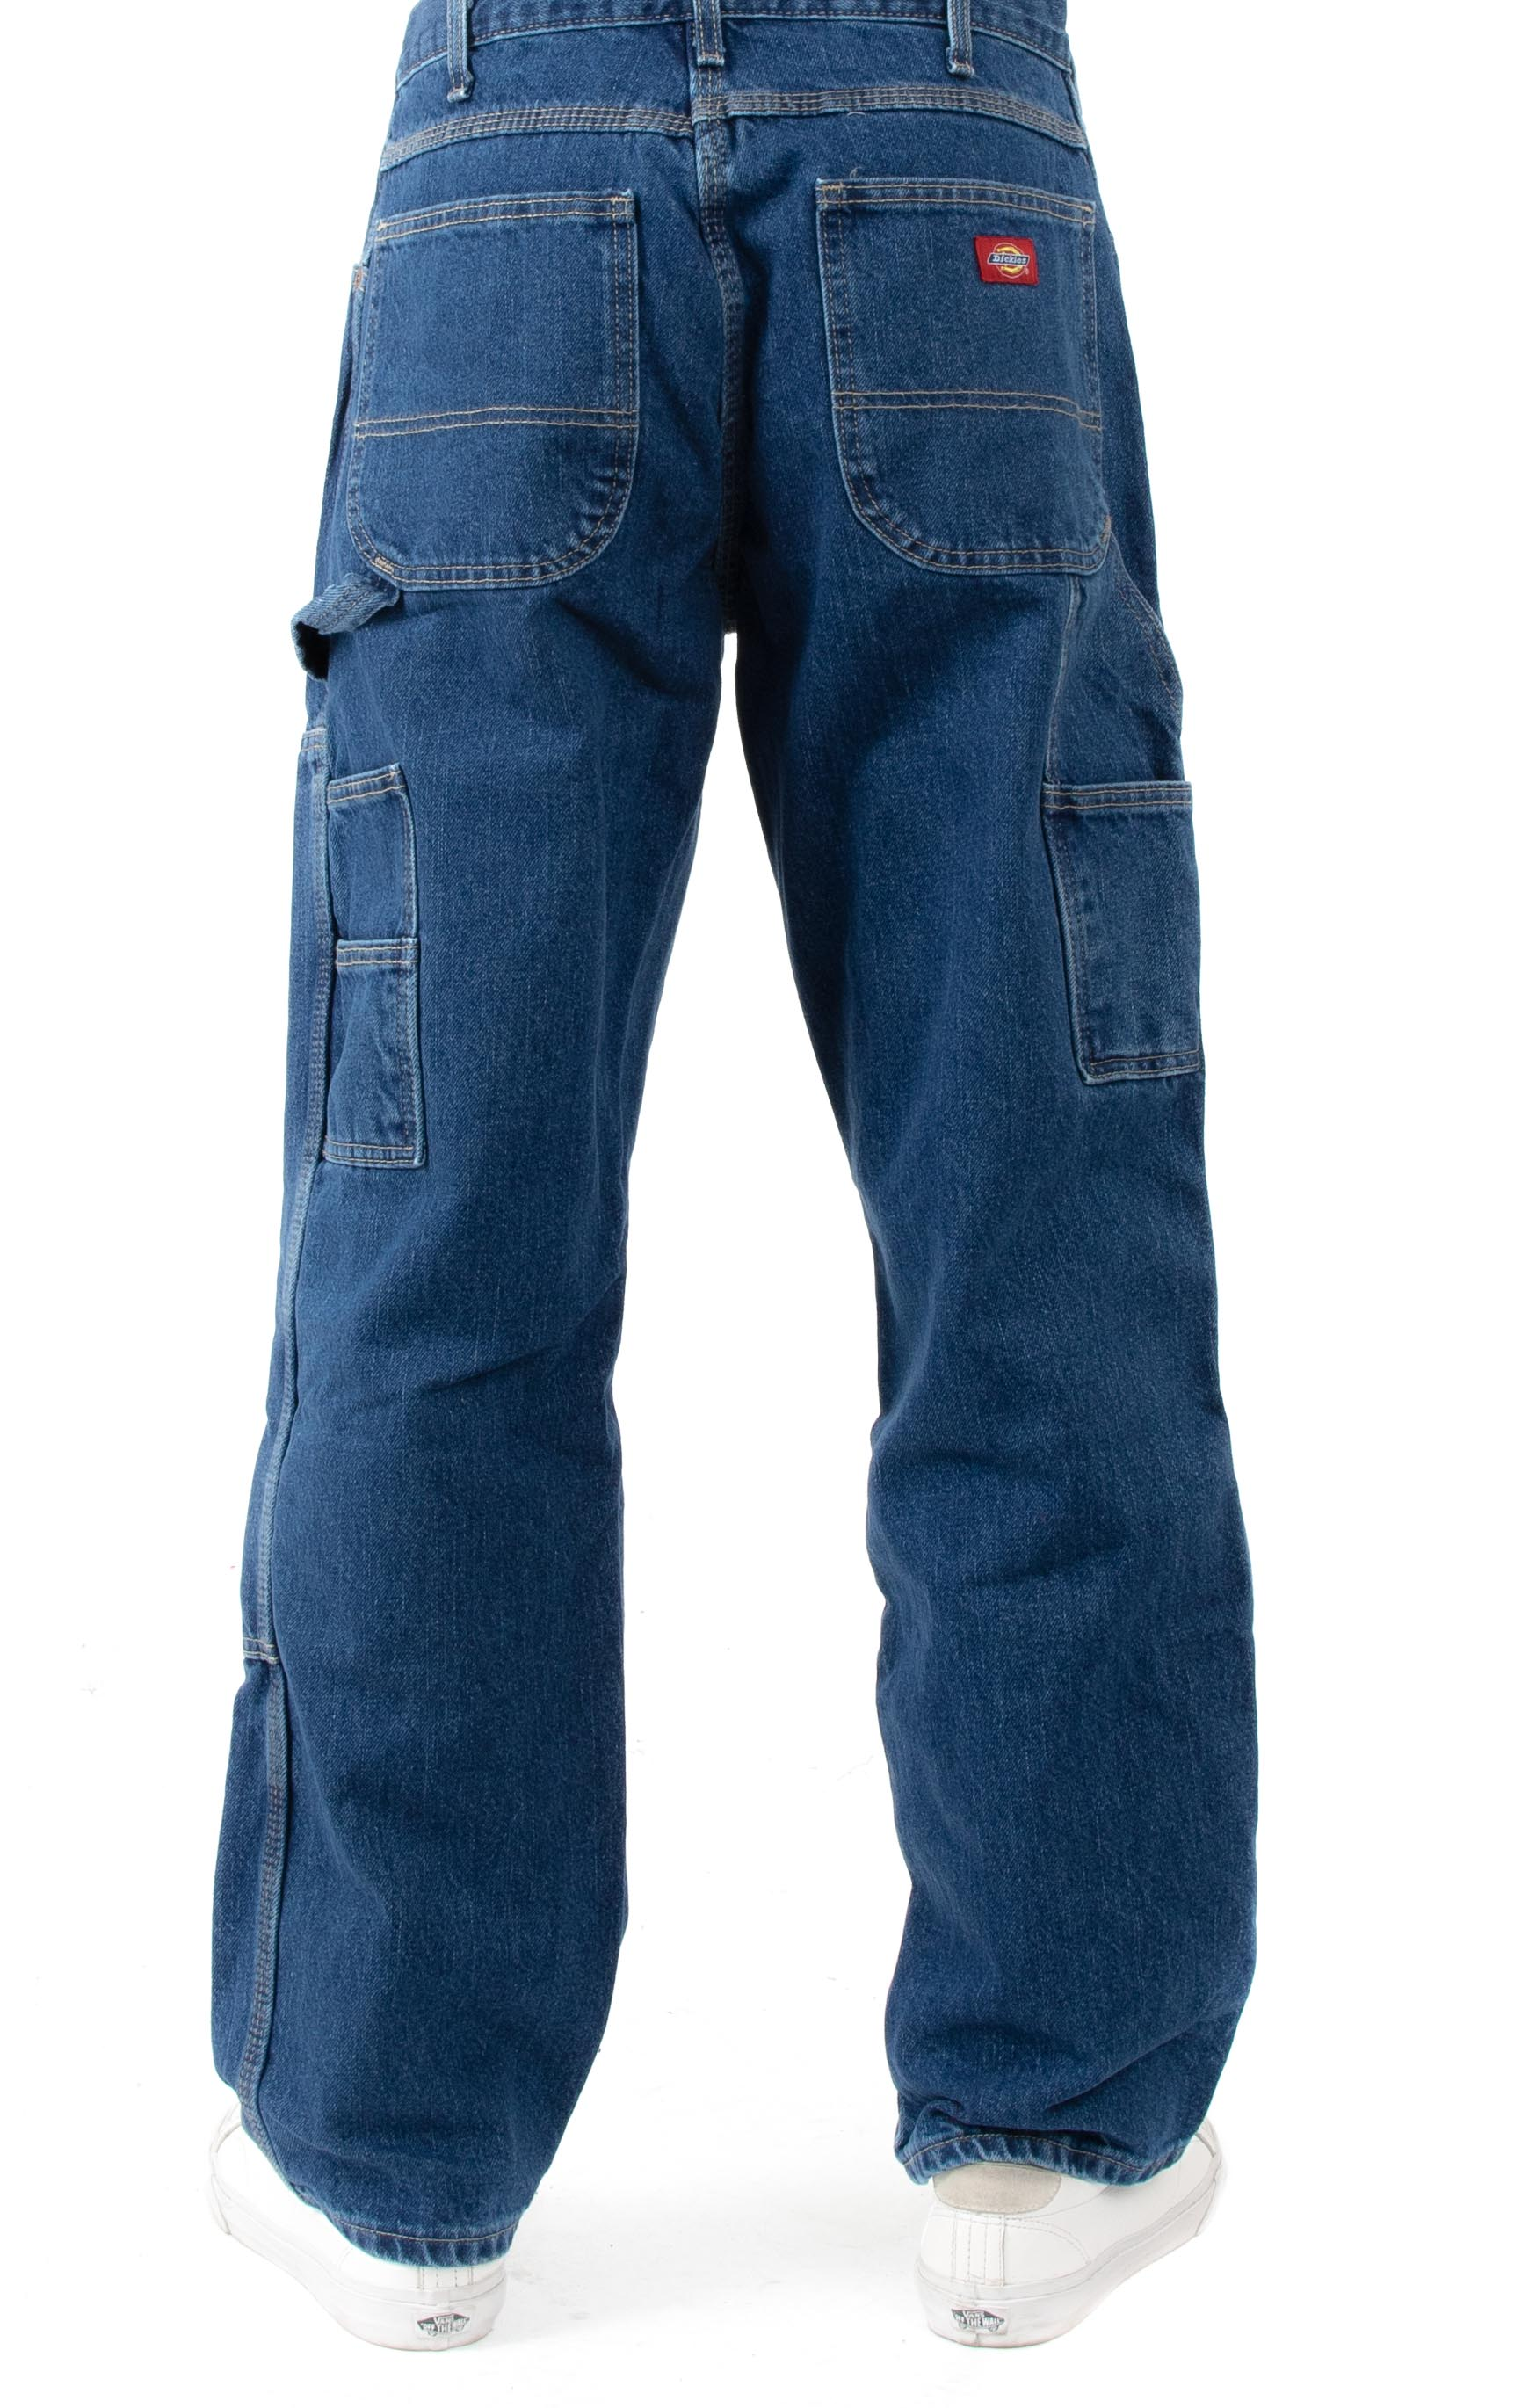 (20694SNB) Relaxed Fit Double Knee Carpenter Denim Jeans - Stonewashed Indigo Blue 3